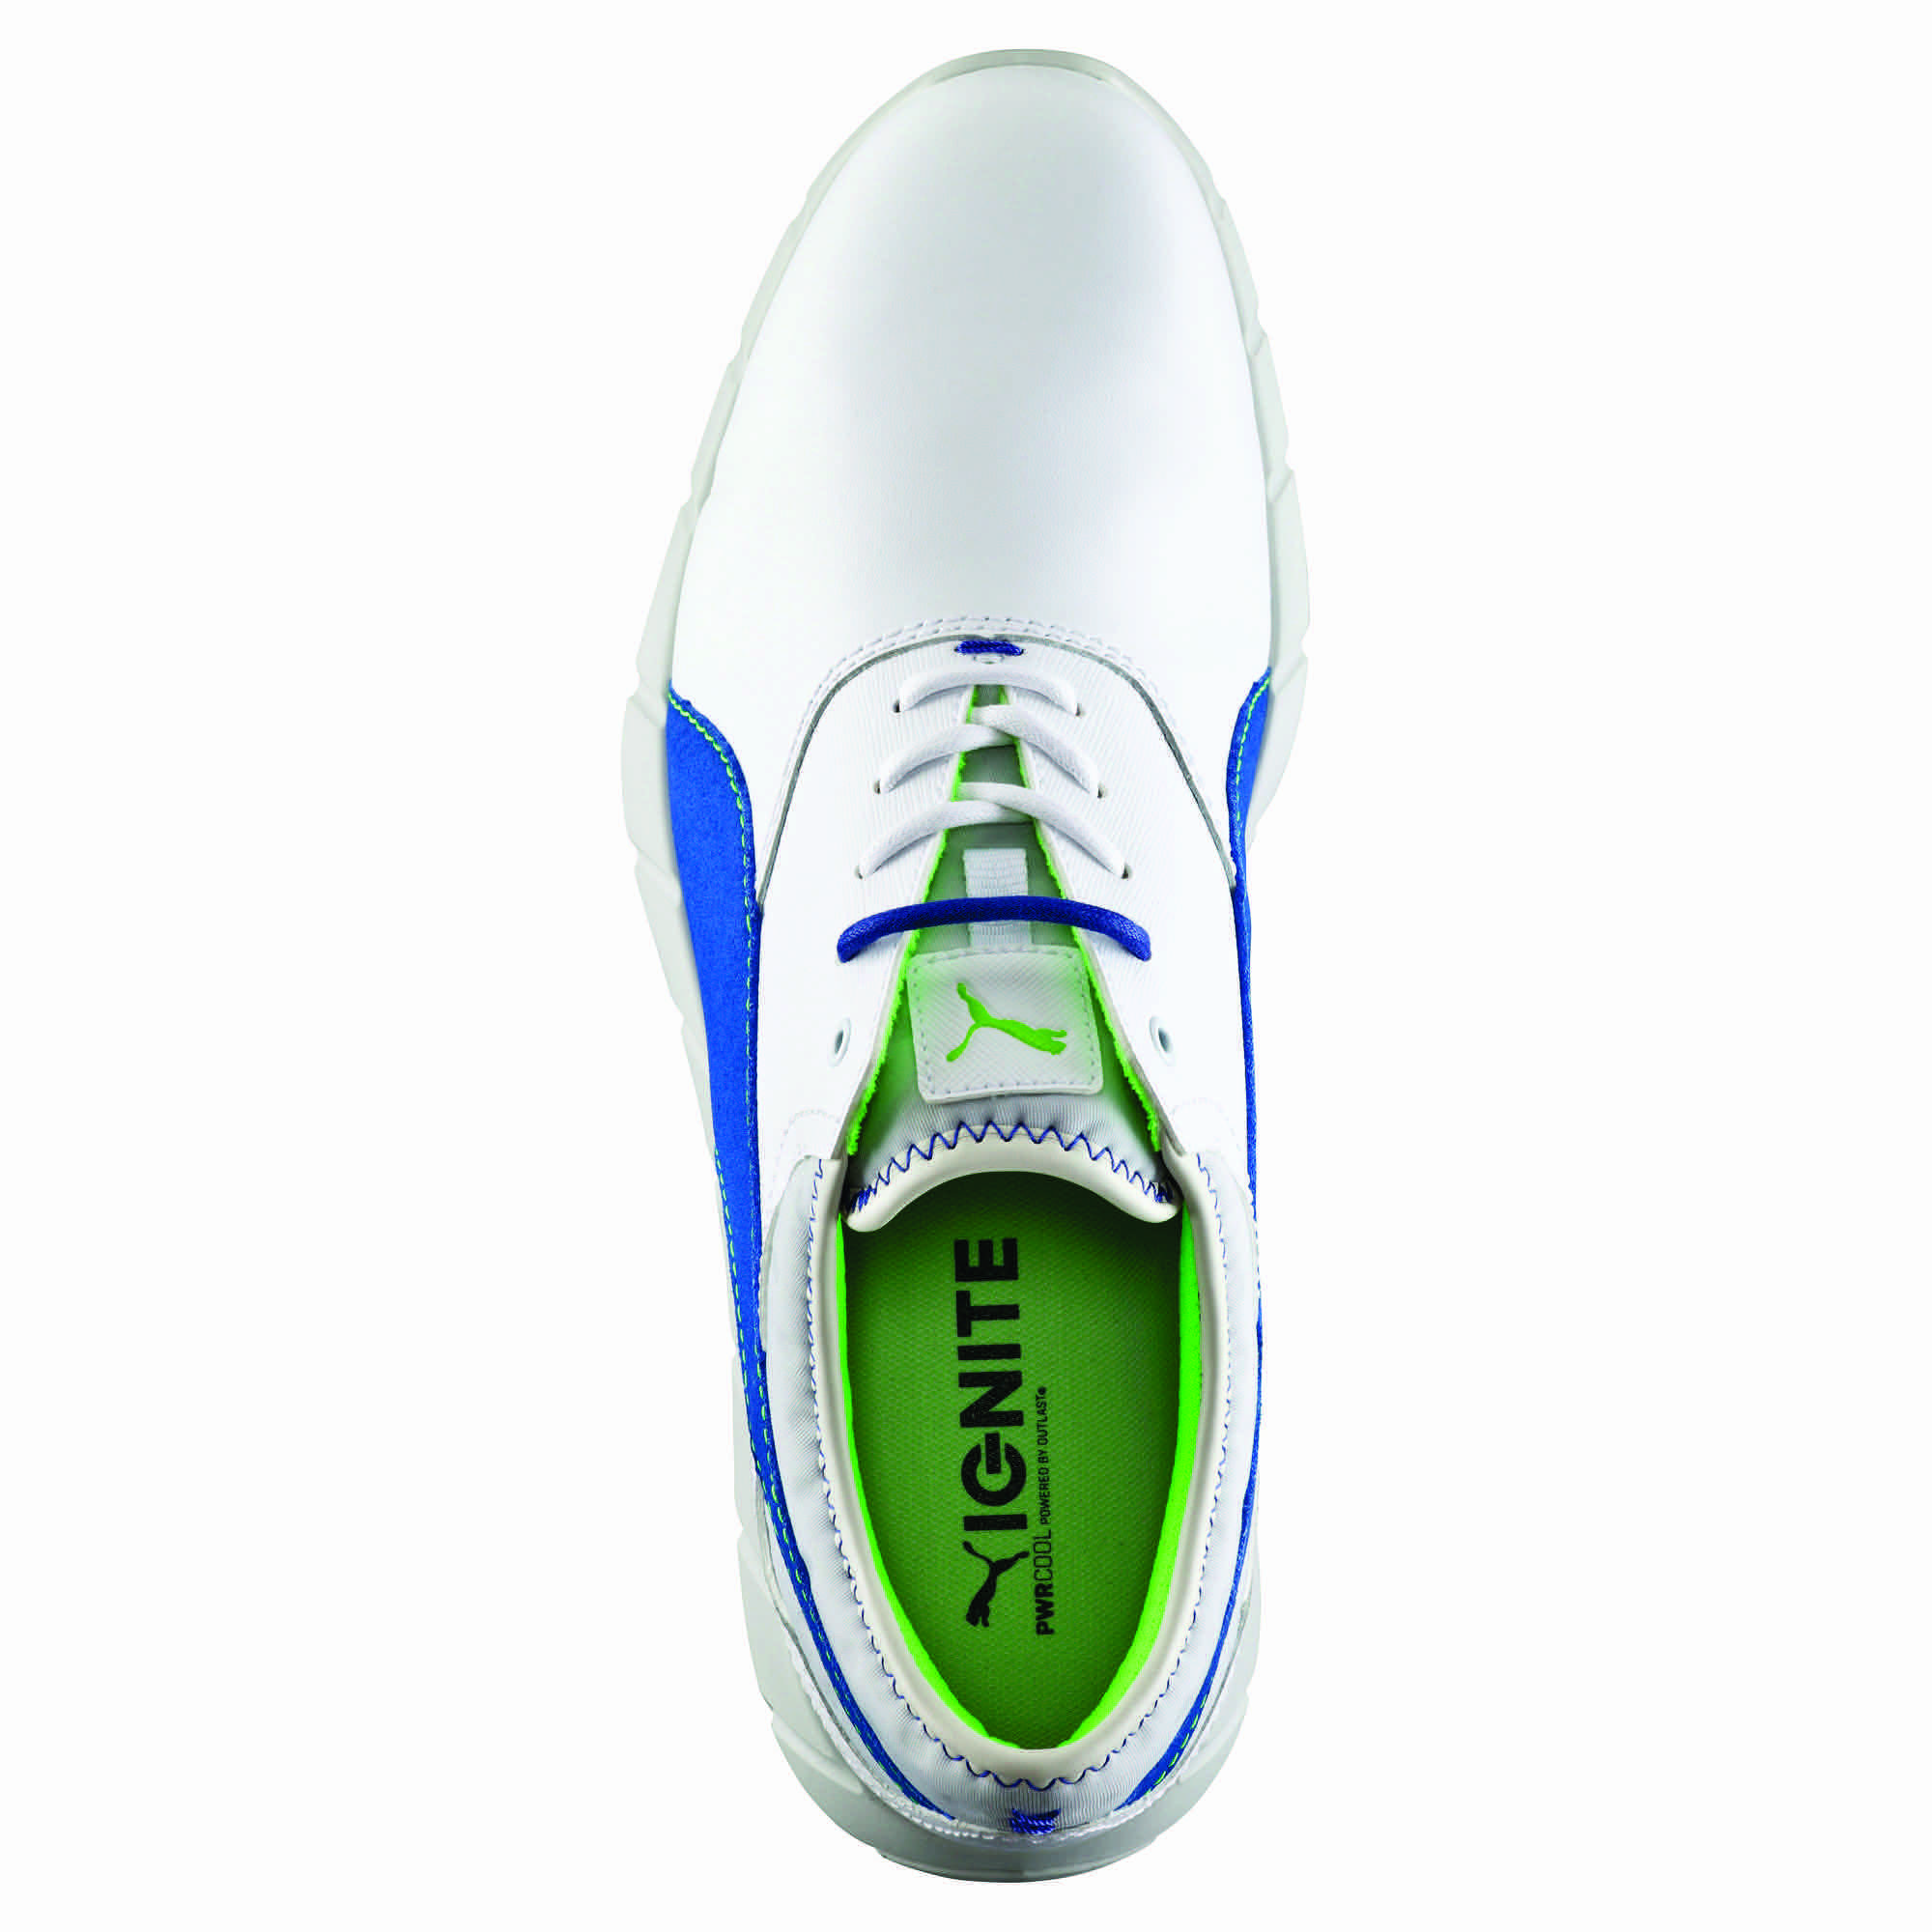 The Puma Ignite Spikeless Golf shoes